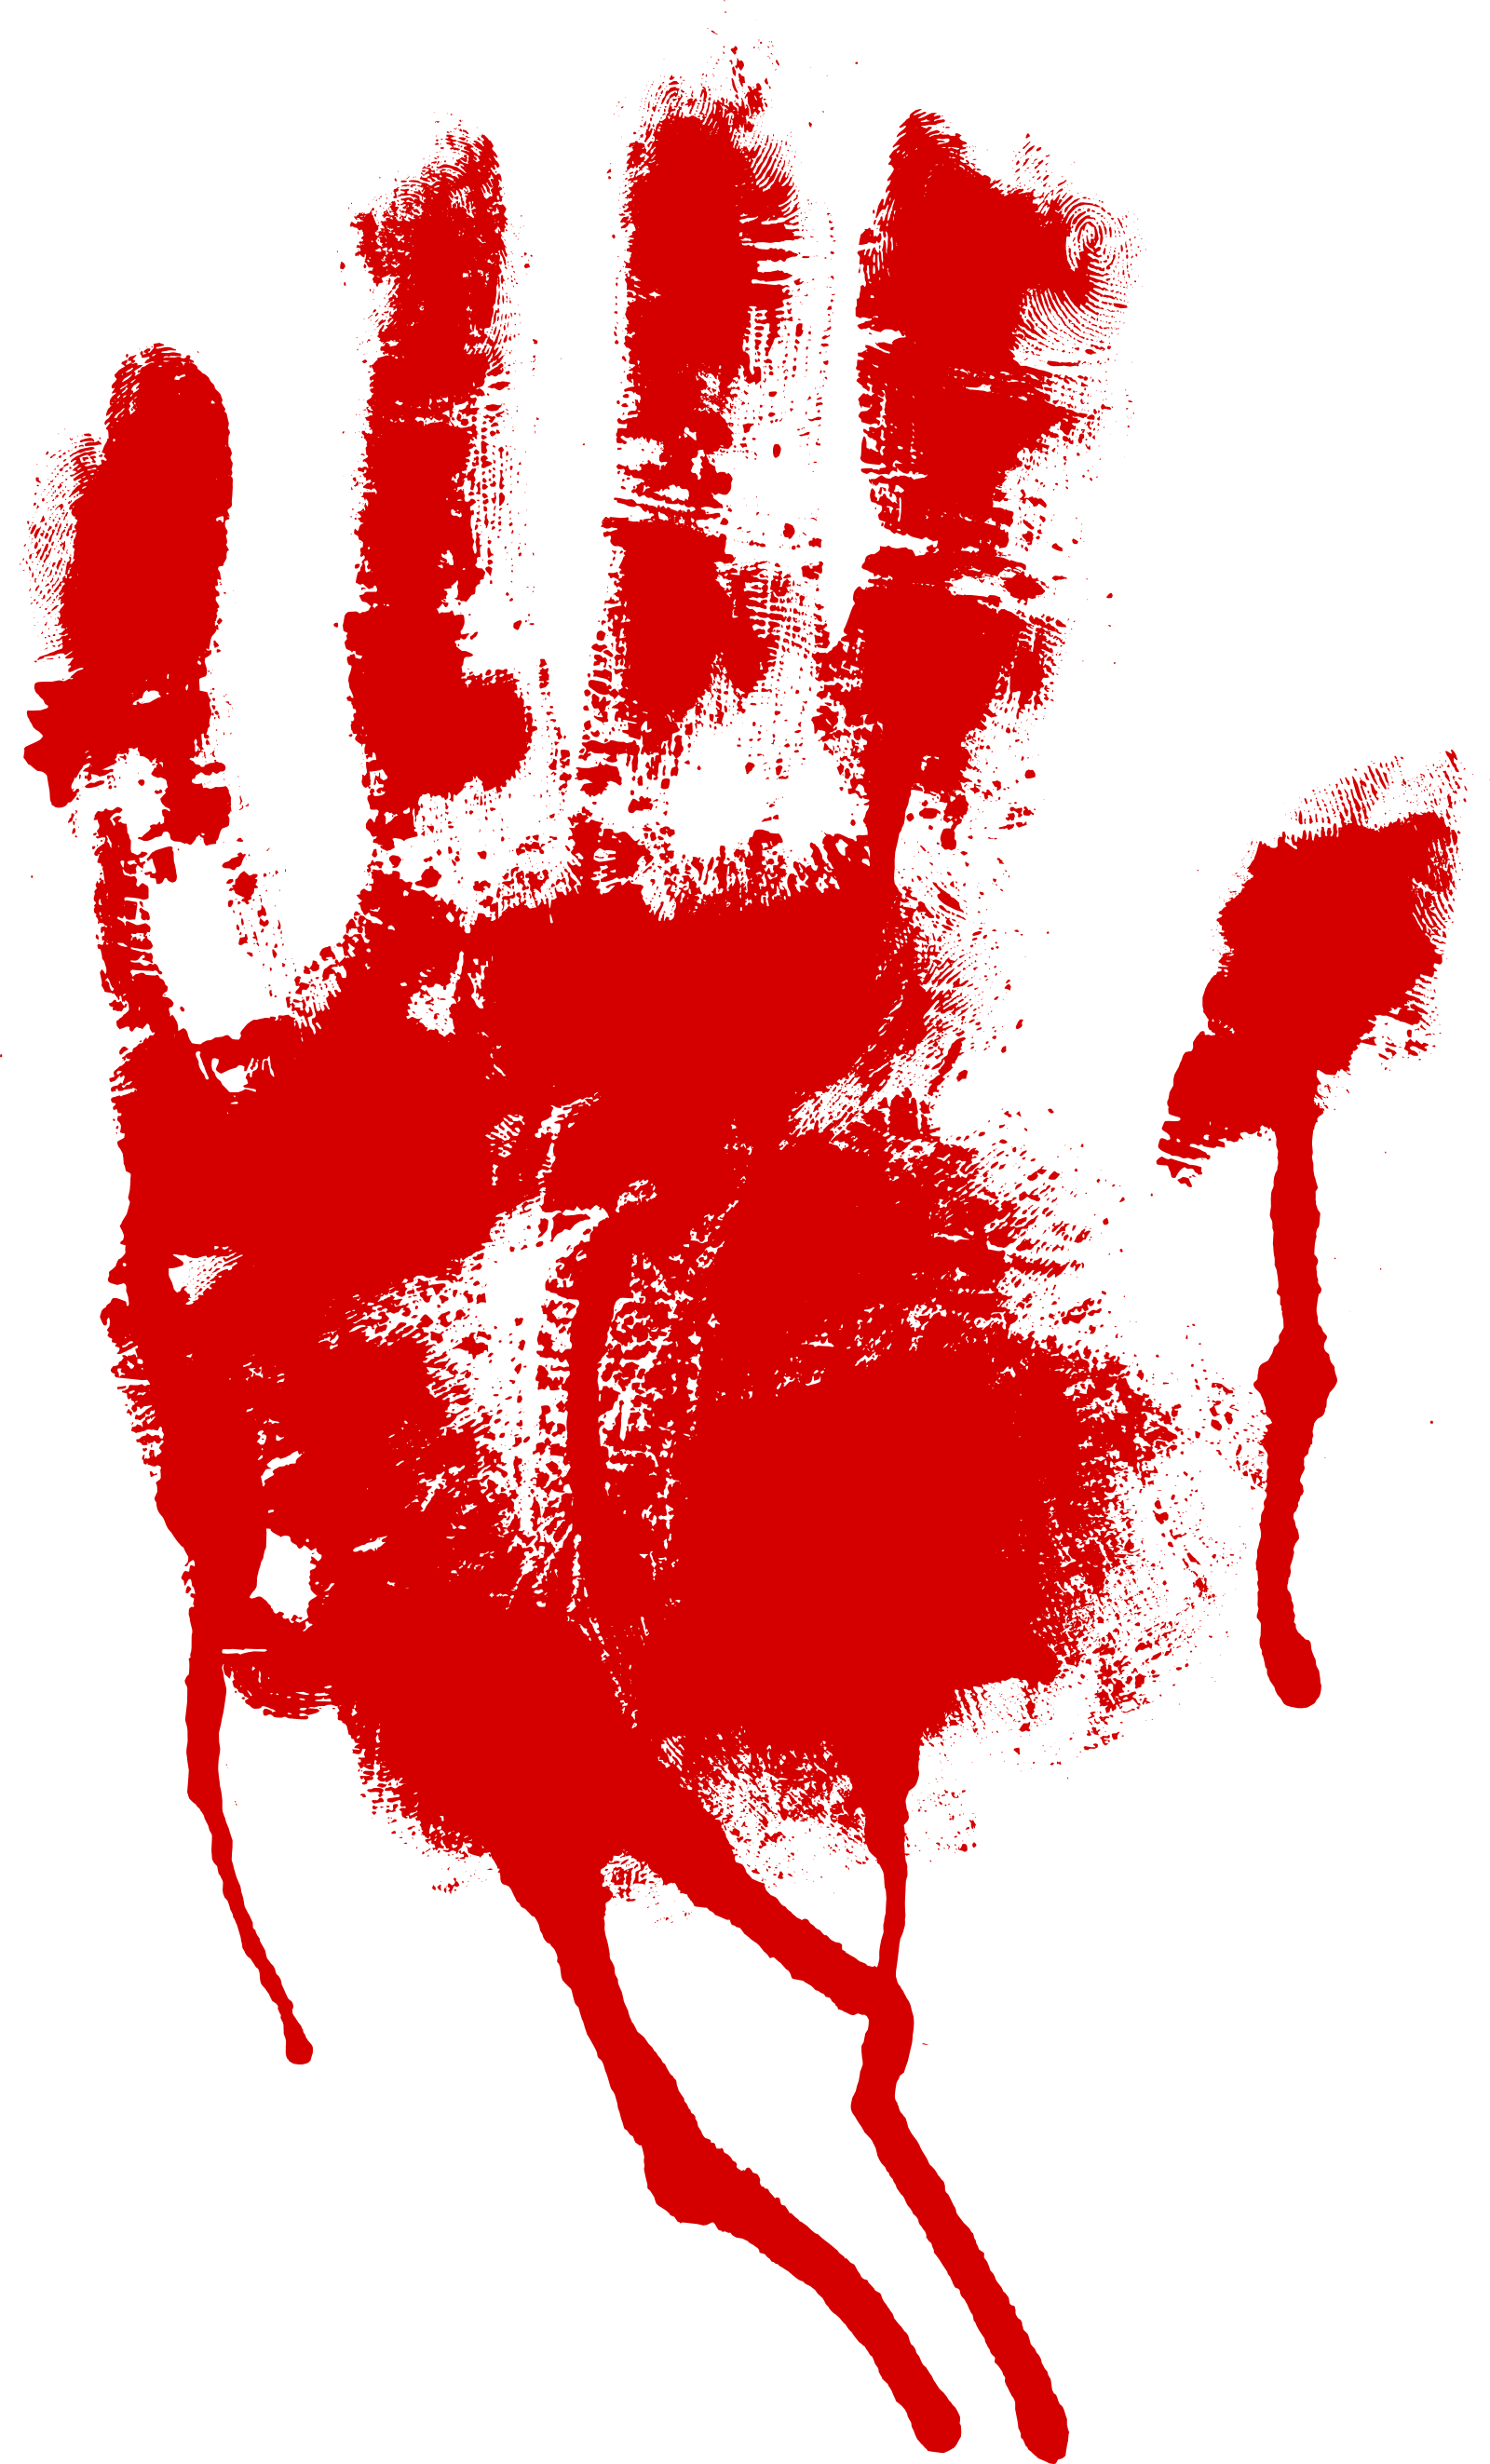 Handprint clipart bloody. Hand print png with